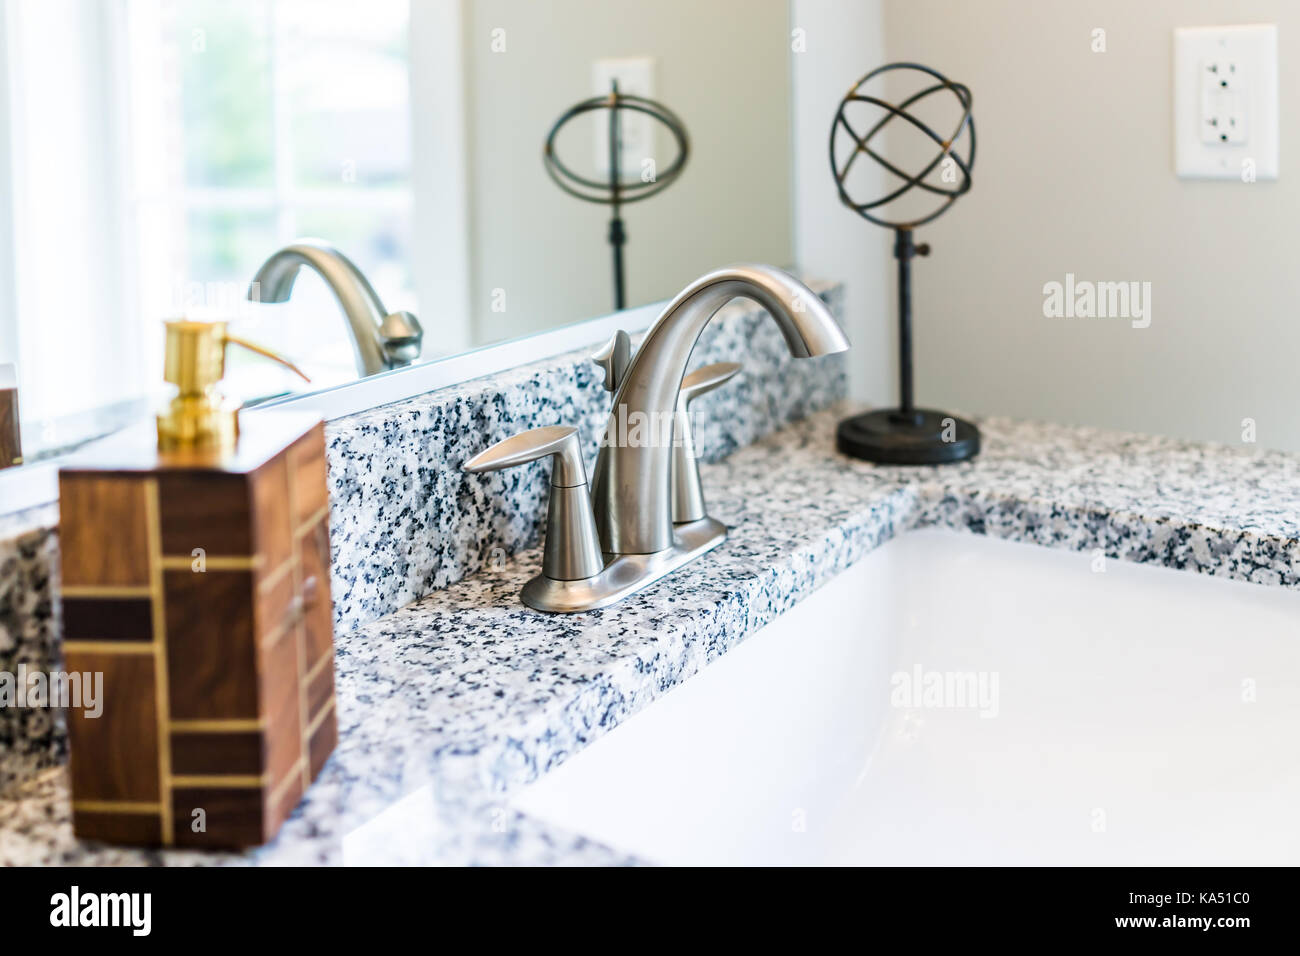 Closeup Of Modern Bathroom Sink With Granite Countertop Mirror Soap Stock Photo Alamy